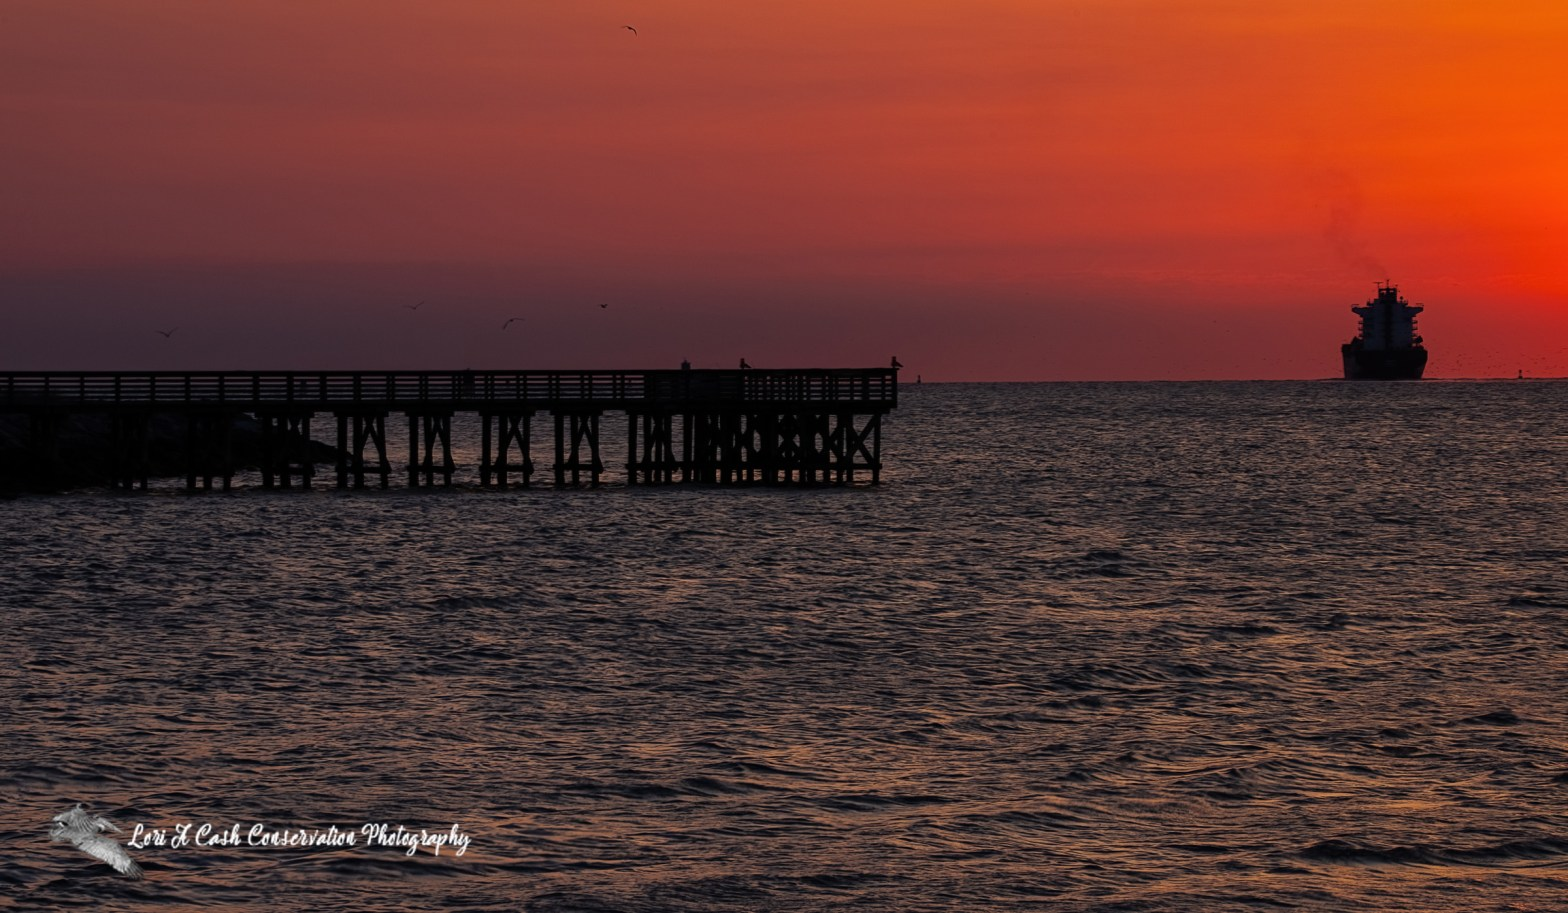 Sunrise along the Chesapeake Bay from the view of Fort Monroe in Hampton, Virginia.